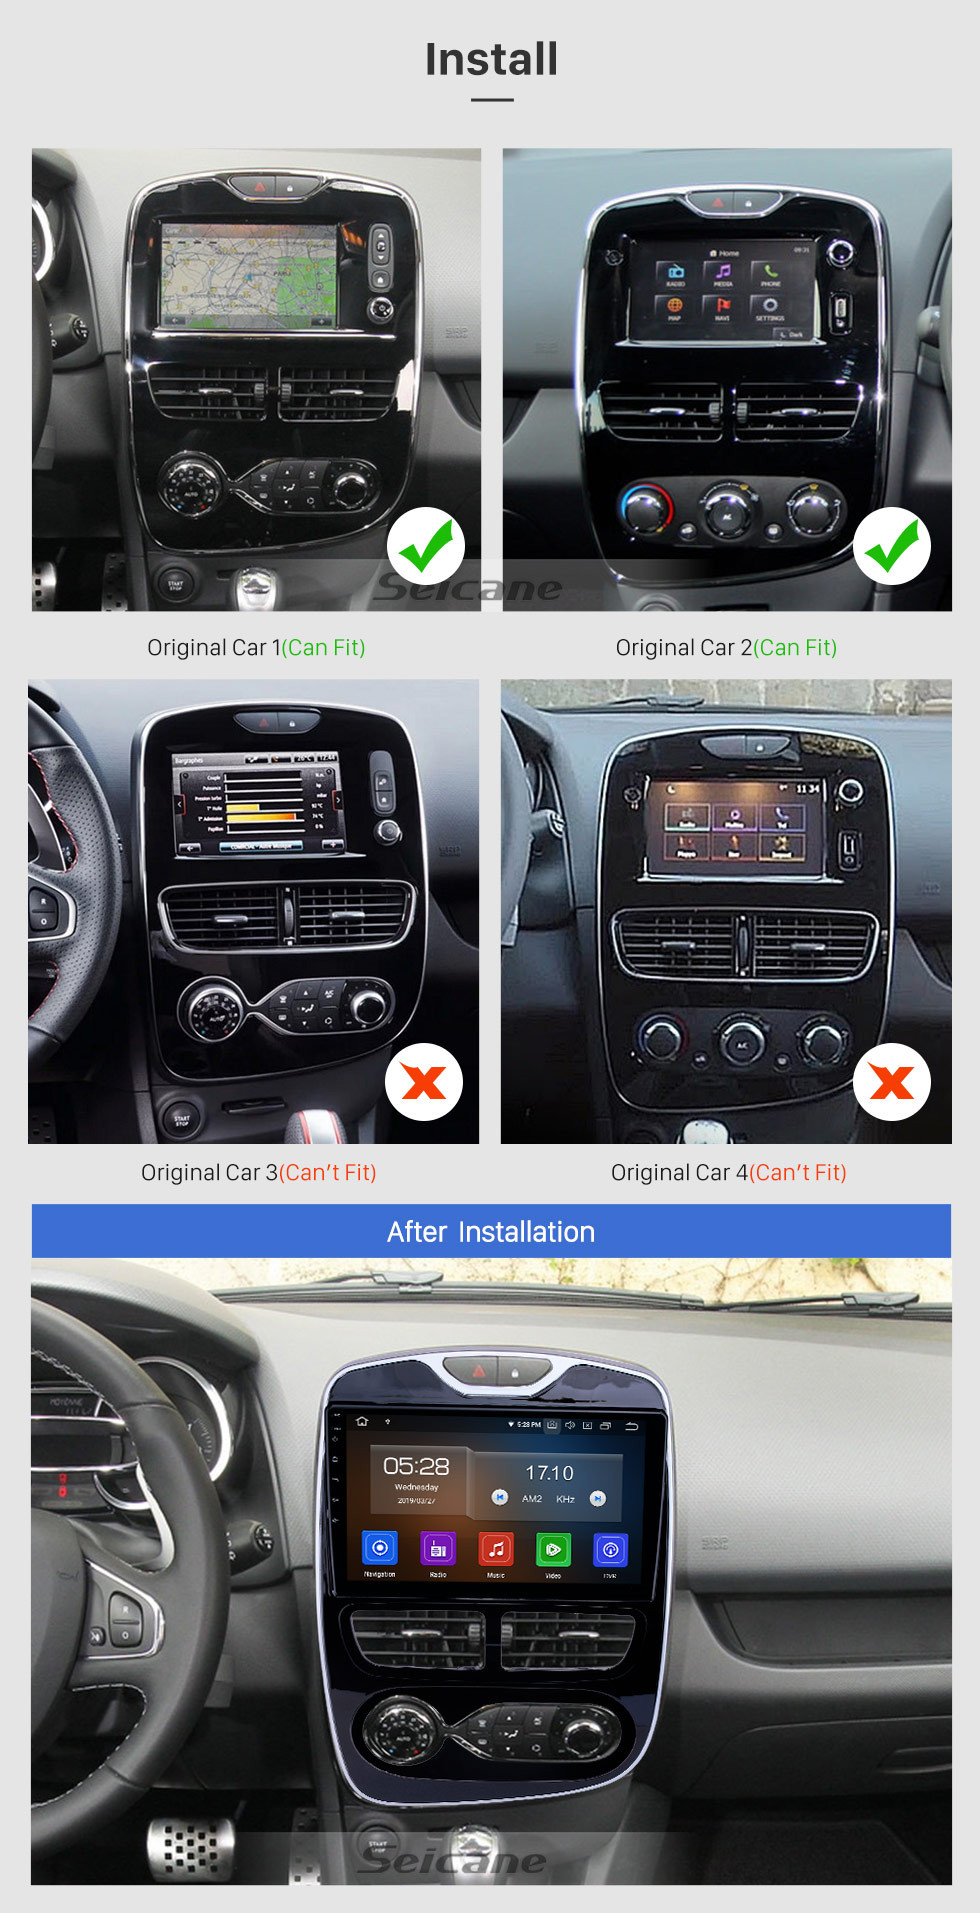 Seicane Android 9.0 10.1 Pulgadas HD Pantalla táctil GPS Sistema de navegación GPS Auto Estéreo 2012-2016 Renault Clio Digital / Analógico Aire acondicionado manual Soporte Bluetooth 3G / 4G WIFI OBDII Control del volante de video DVR